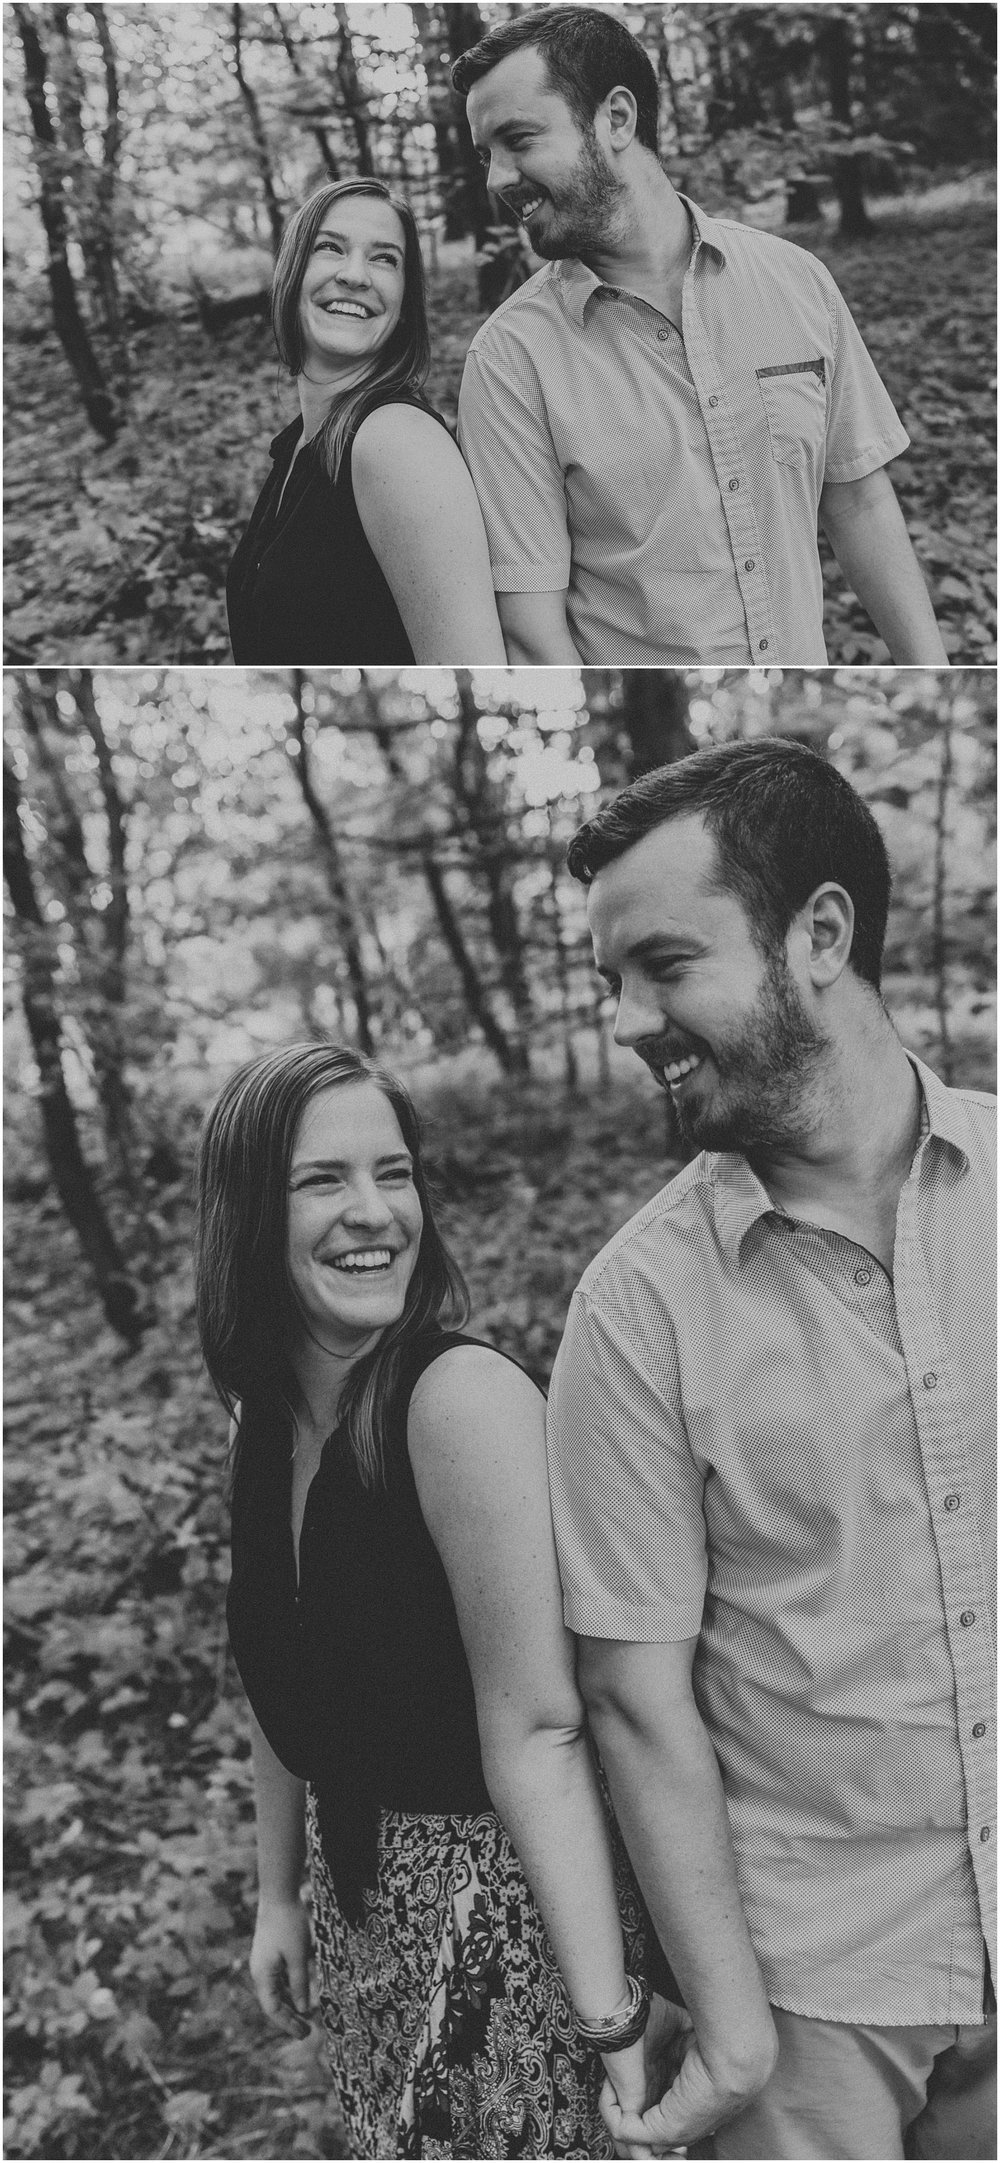 lifestyle-anniversary-engagement-photo session-rv-camping-road trip-vintage trailer-camping-outdoor photos_0253.jpg